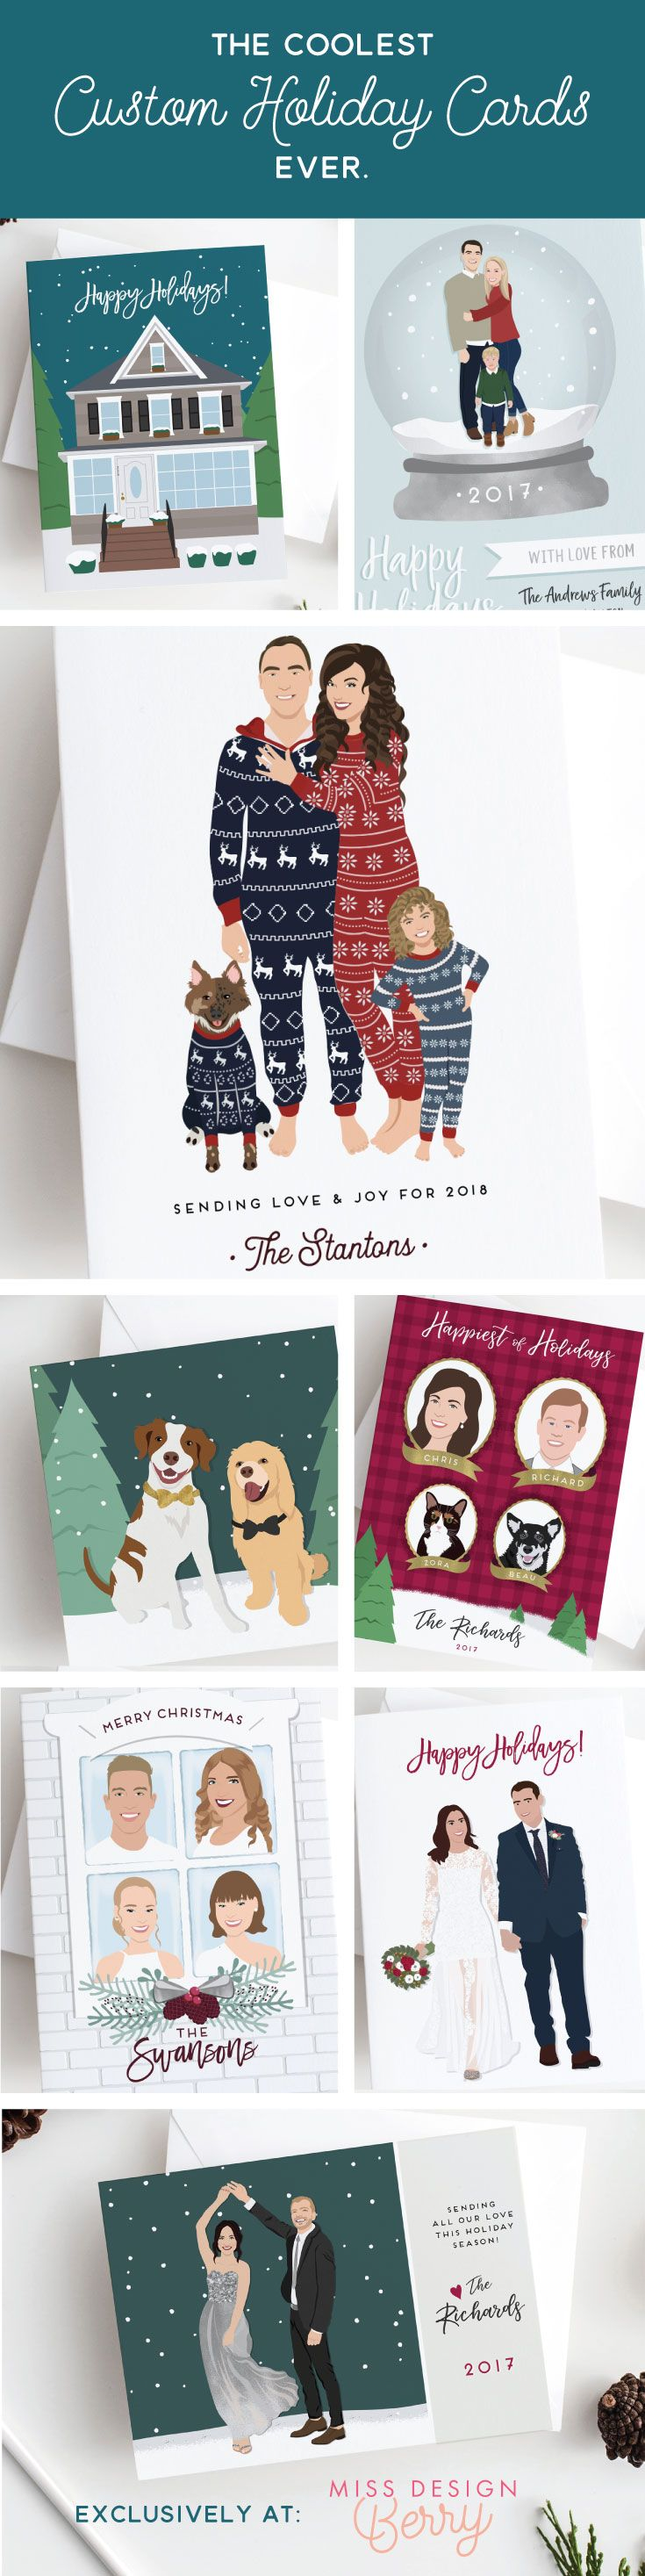 229 best Christmas Cards & Wrap images on Pinterest